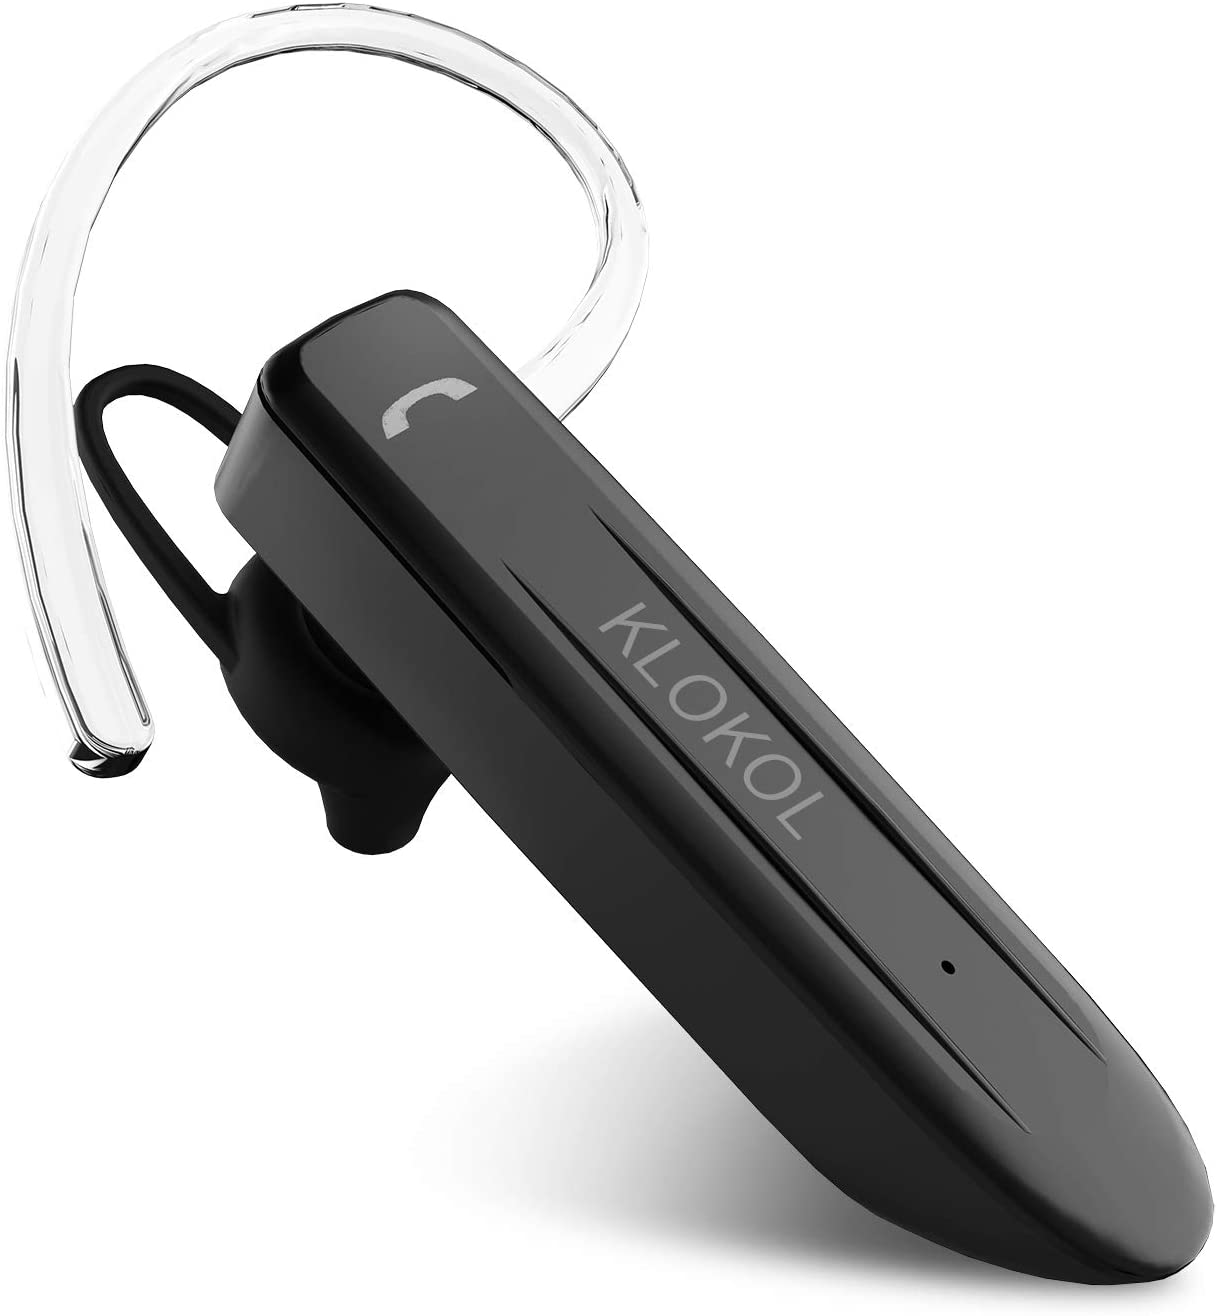 Klokol Bluetooth Headset 28Hrs Playtime Wireless Bluetooth Earpiece For Cell Phone